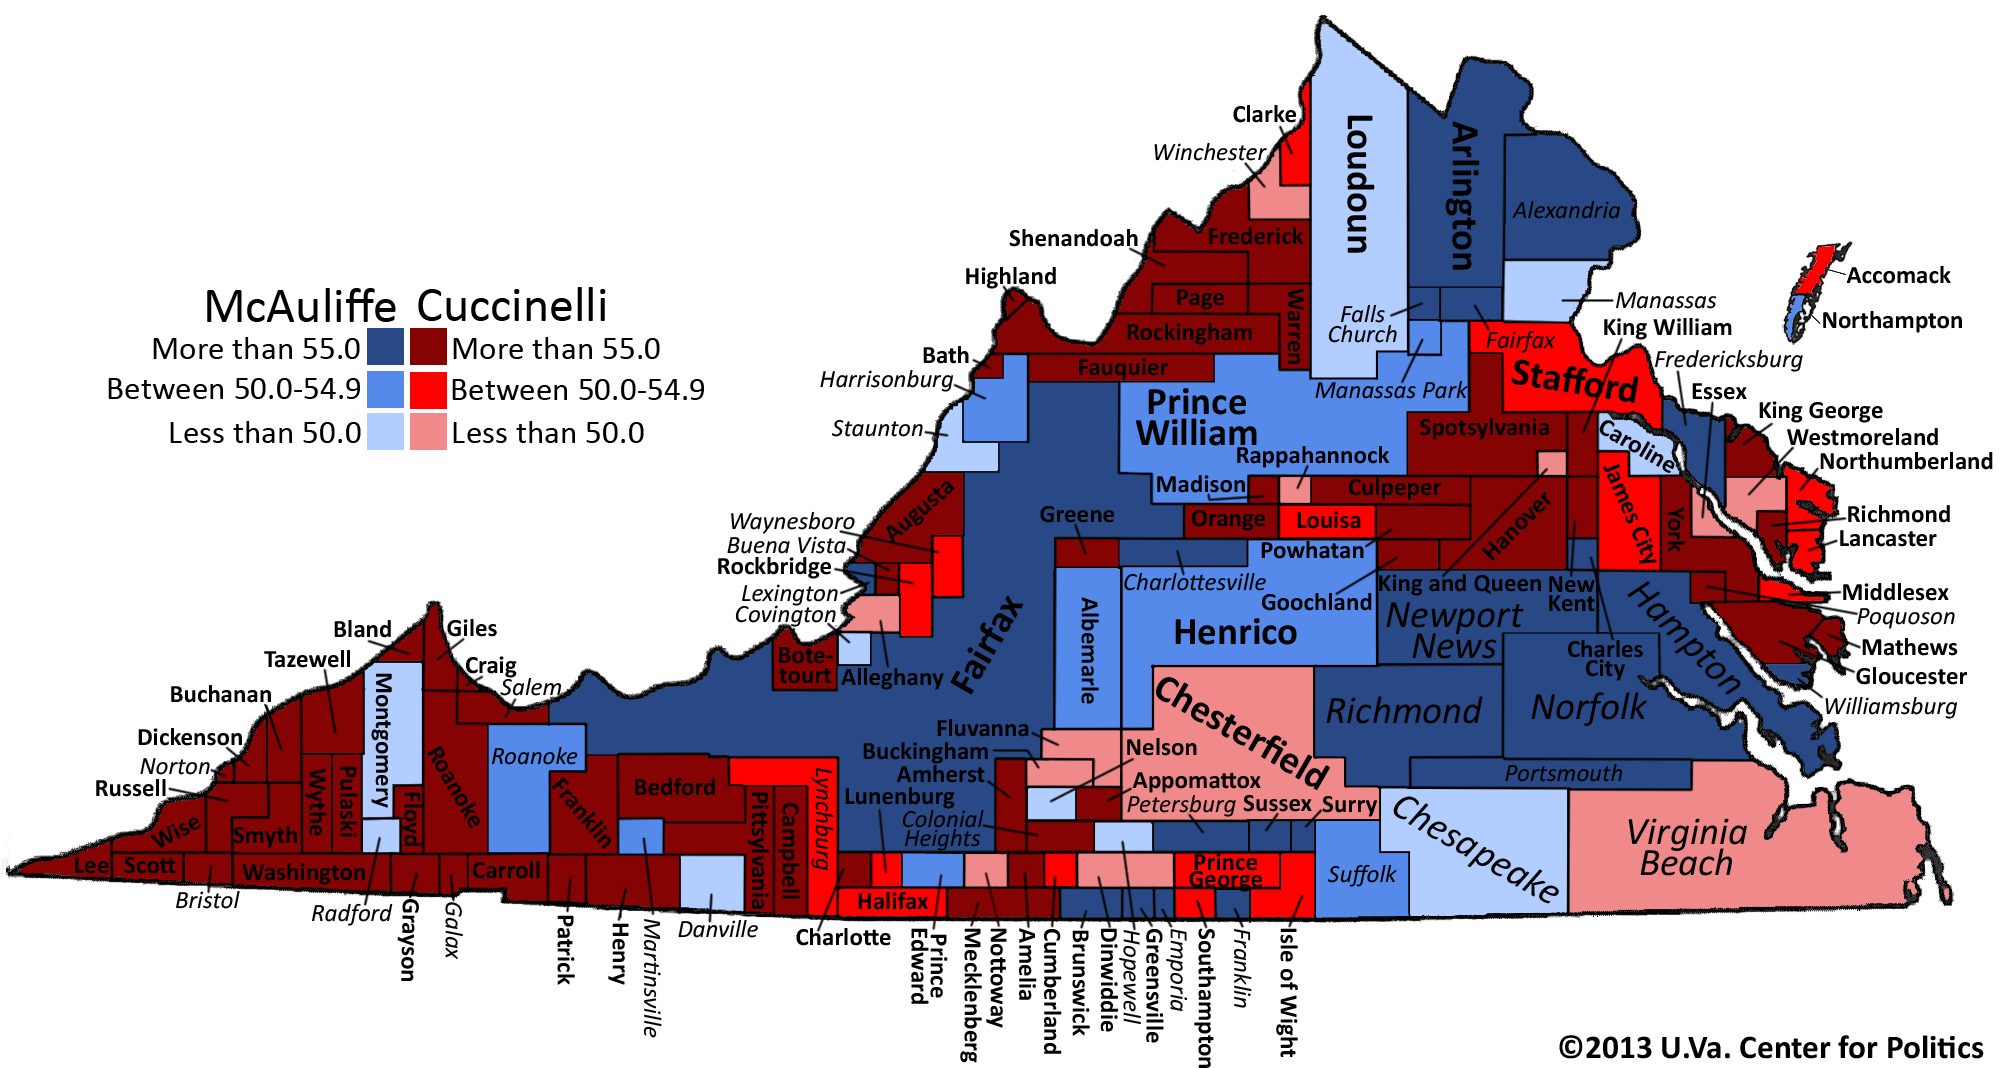 Map 2 Political Map Of Virginia Shaded By 2013 Gubernatorial Vote